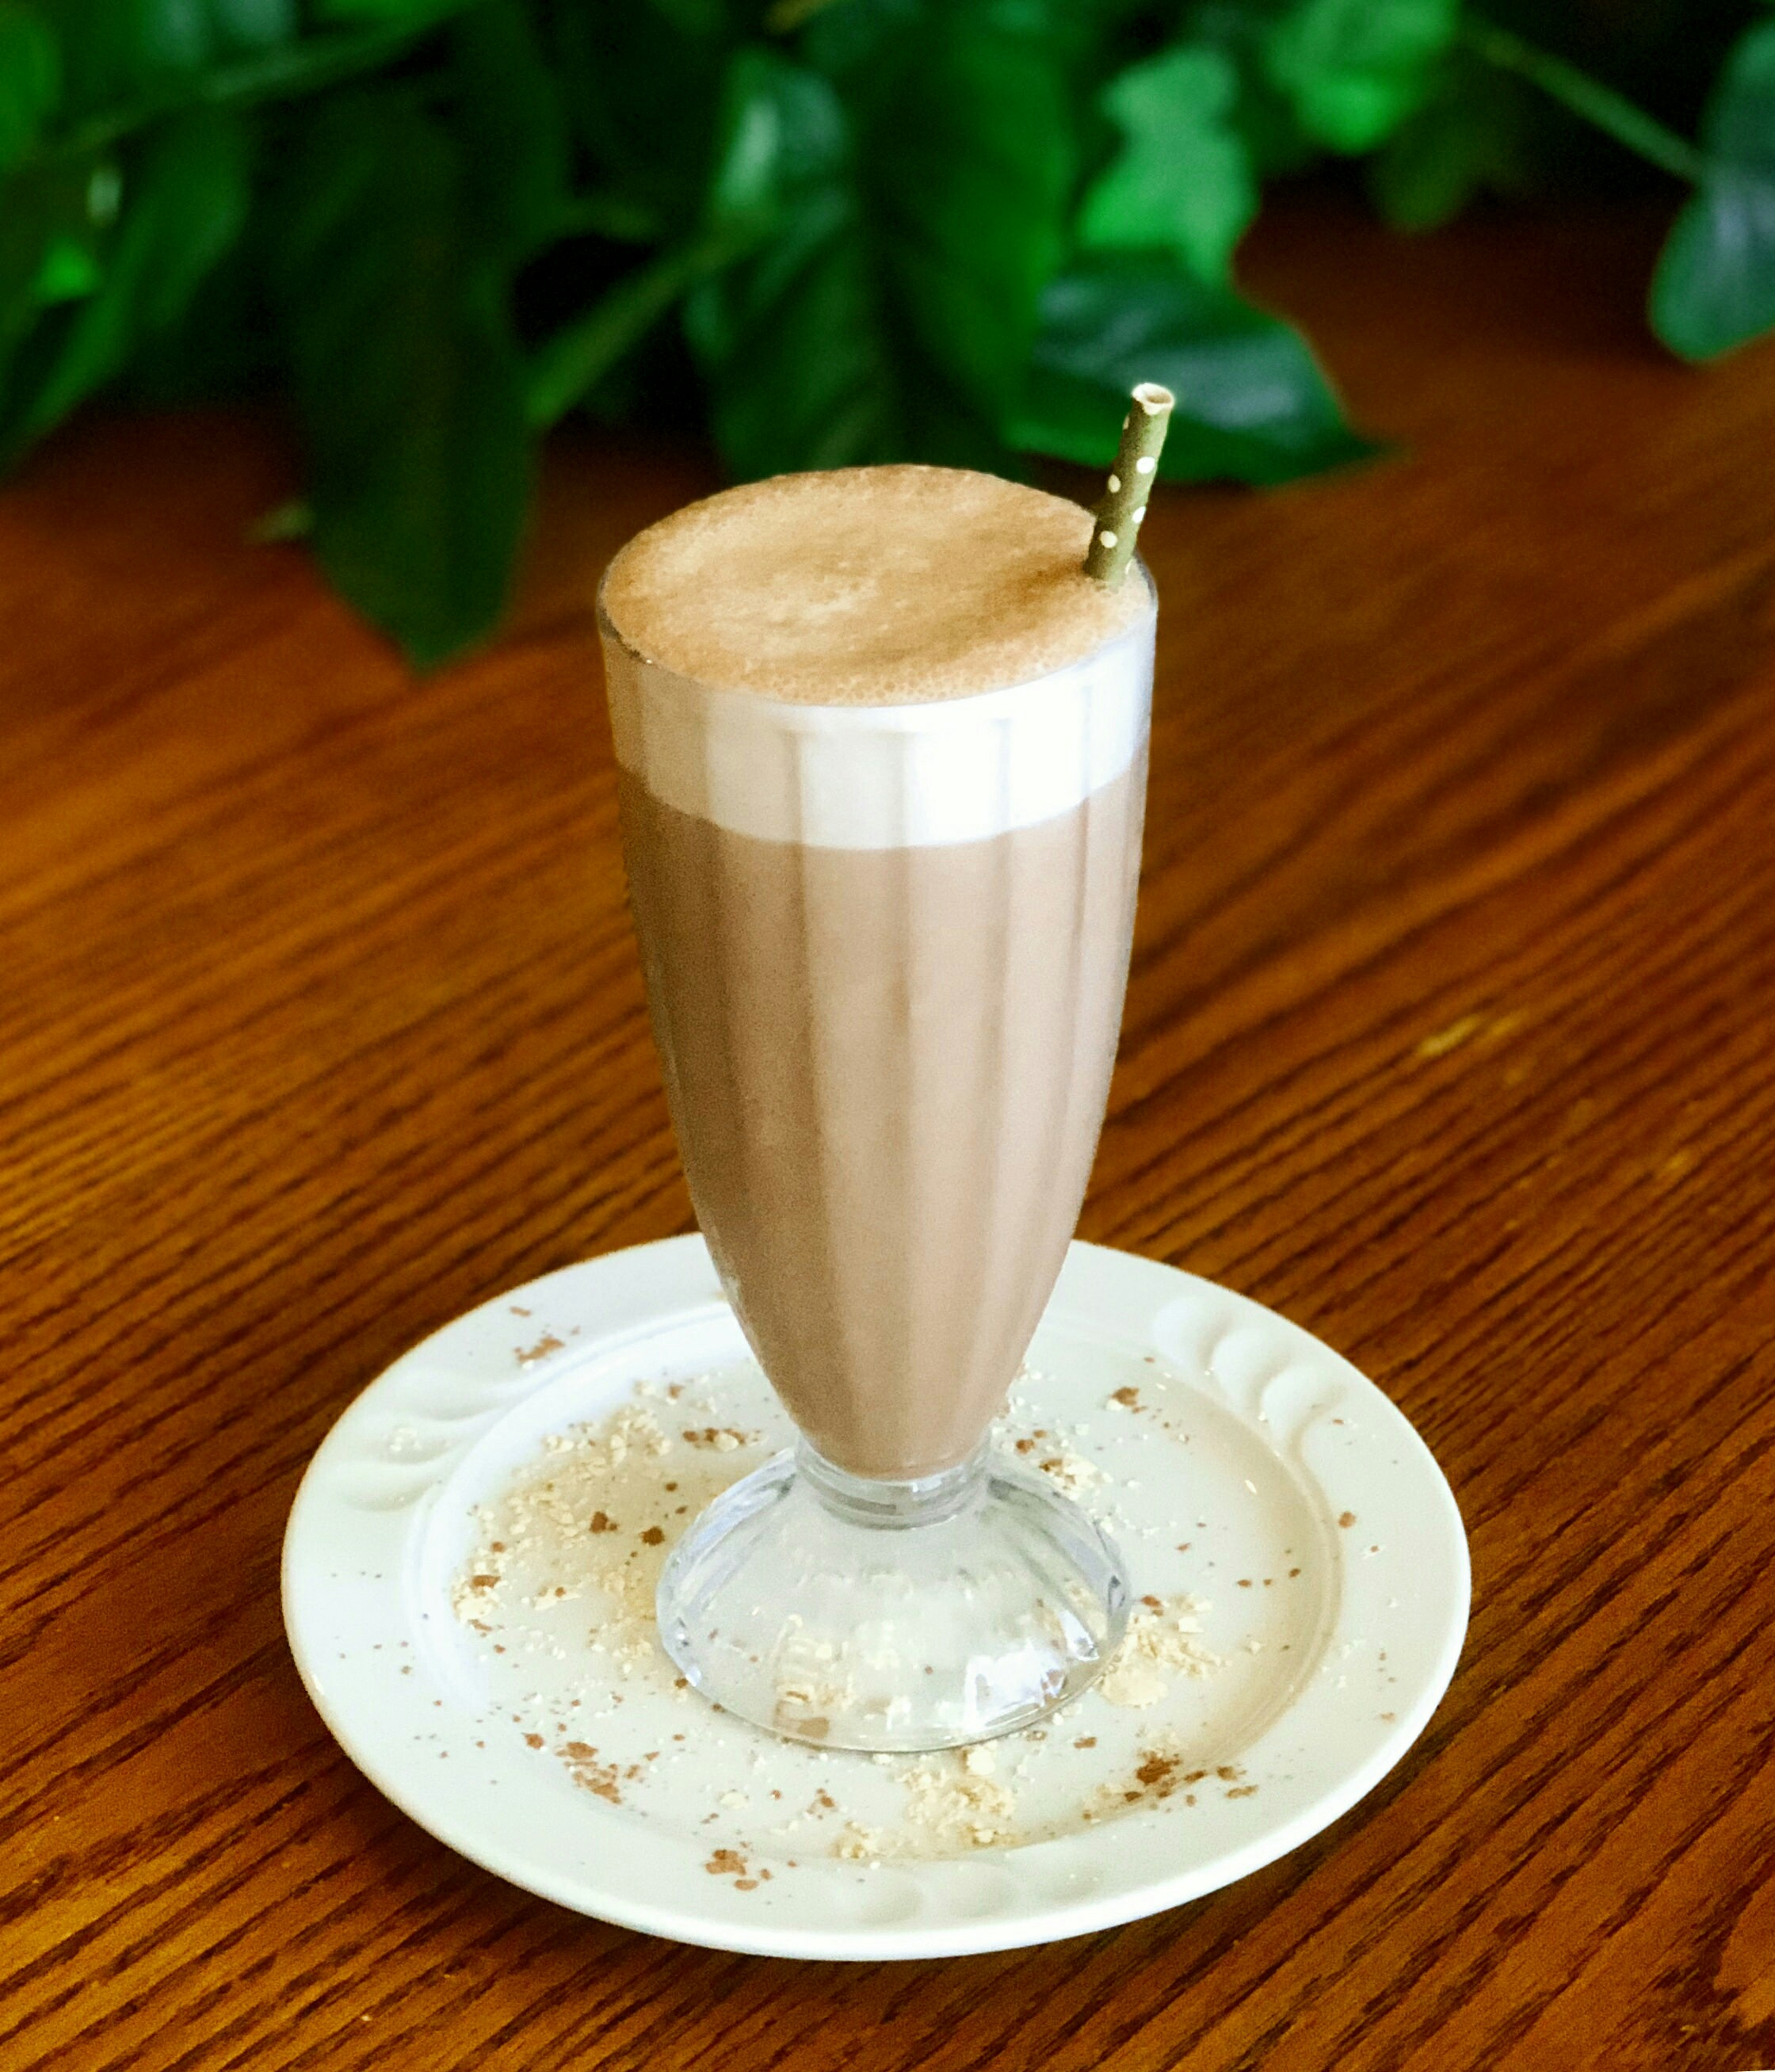 Carnation Breakfast Peanut Butter Cup Smoothie